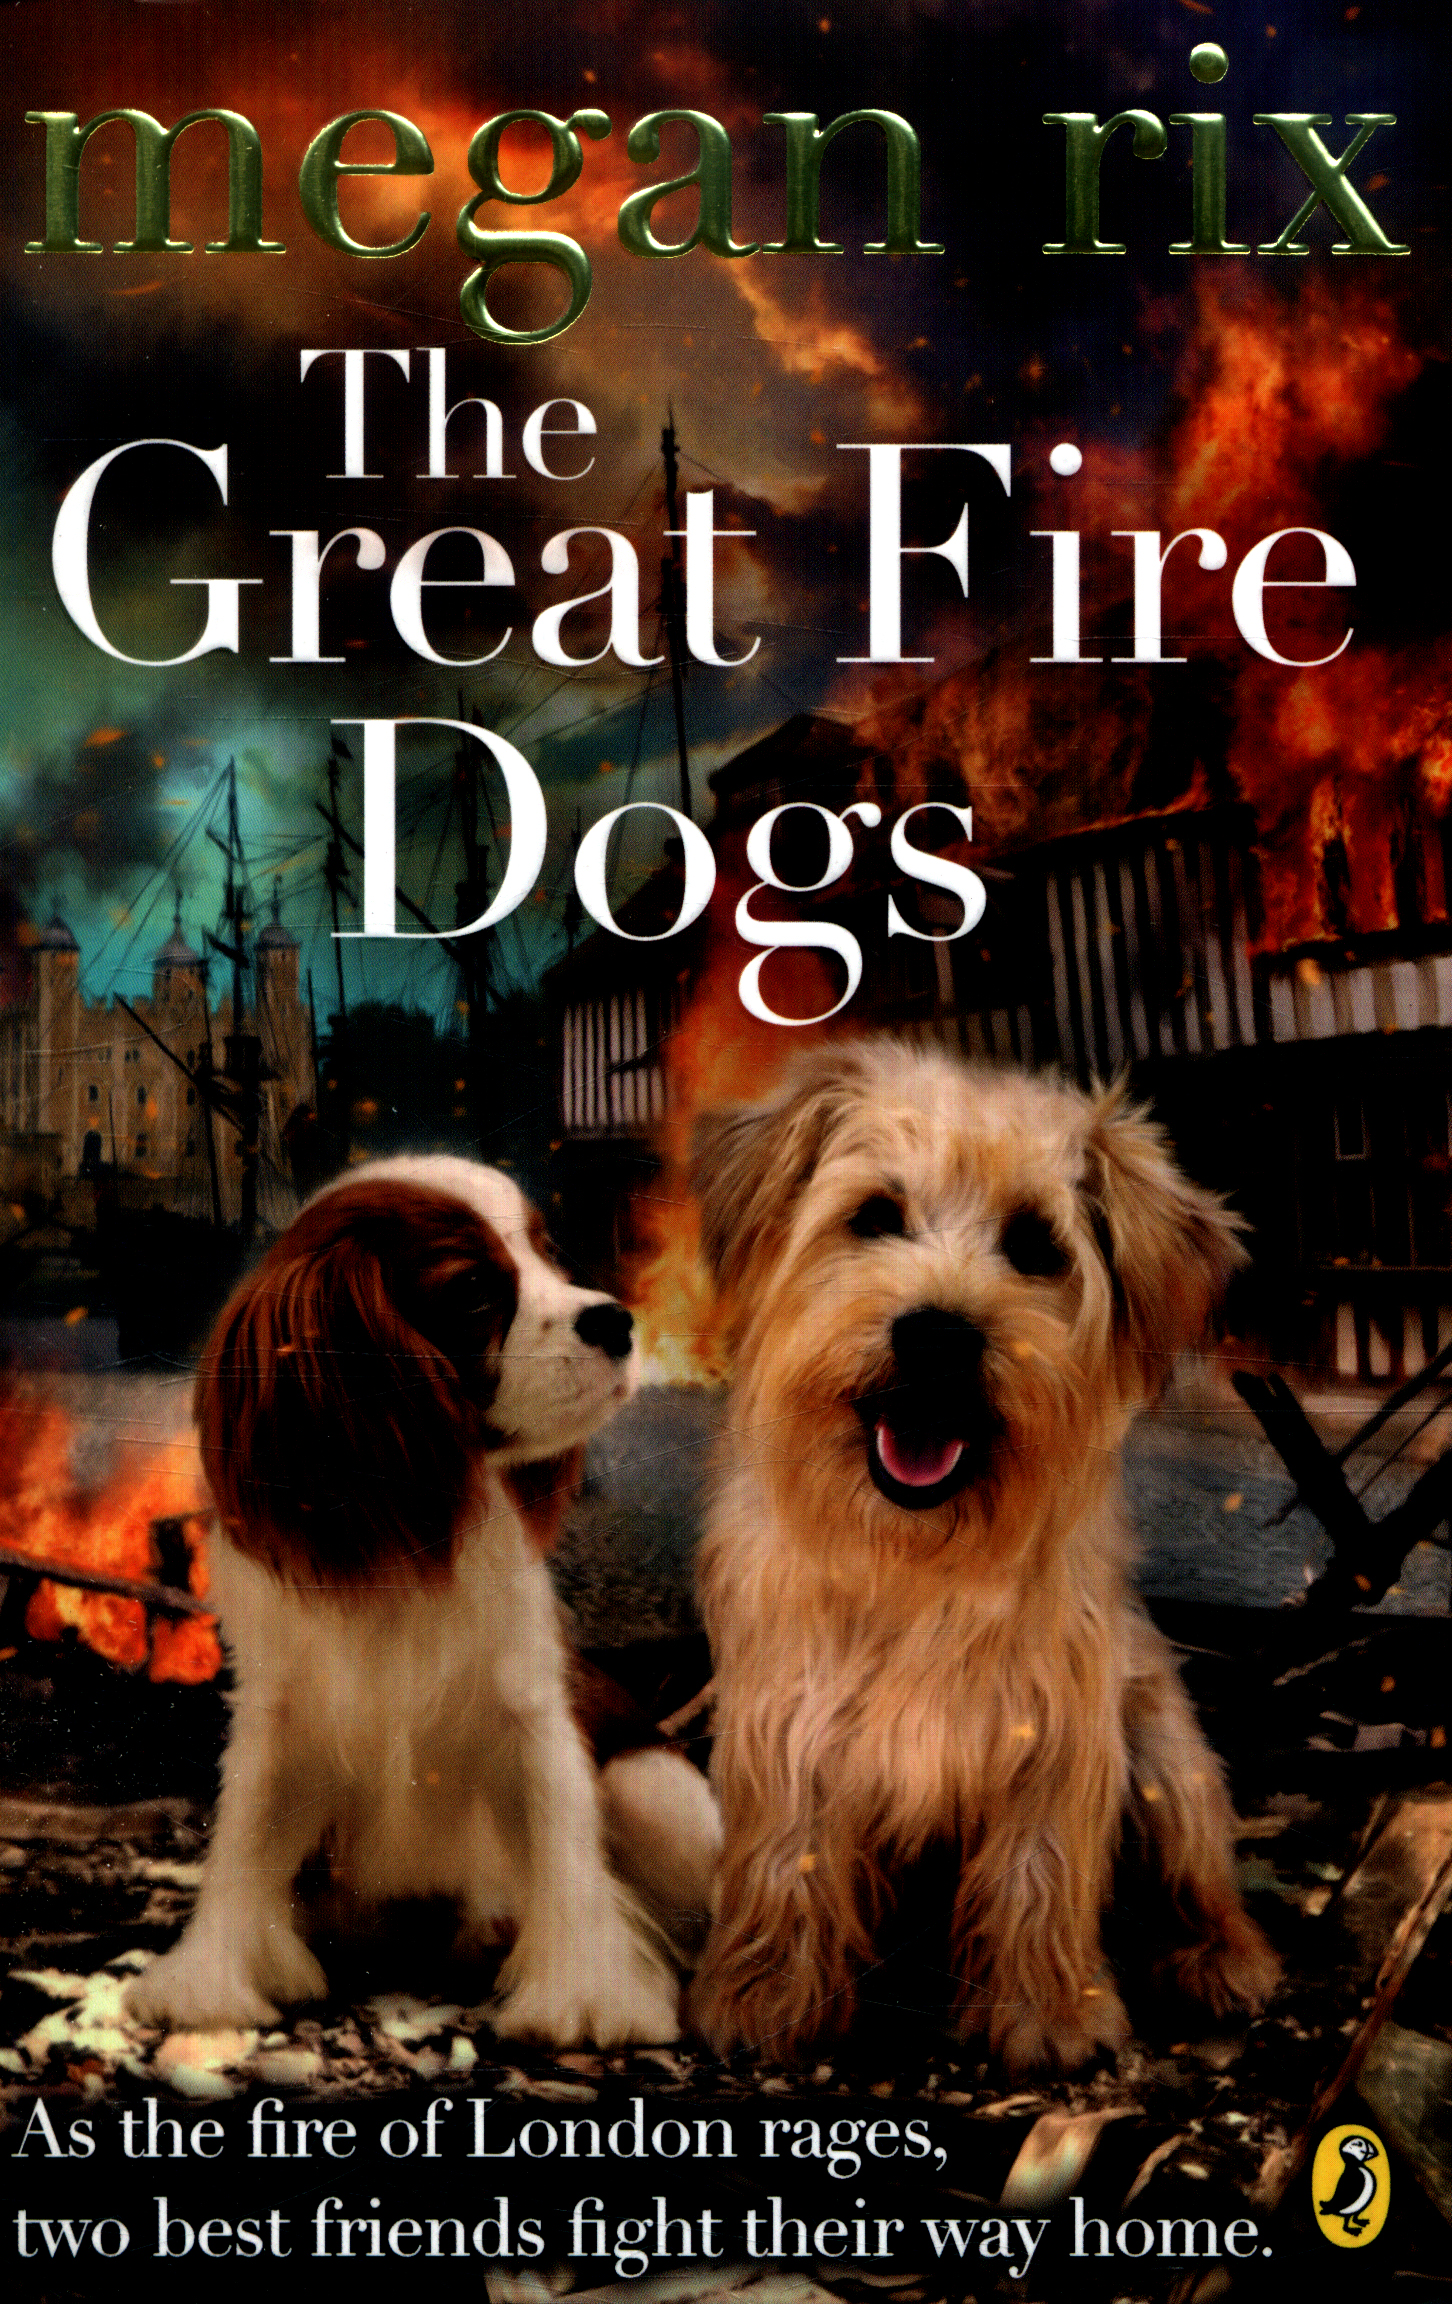 The Great Fire Dogs By Rix Megan 9780141365268 Brownsbfs